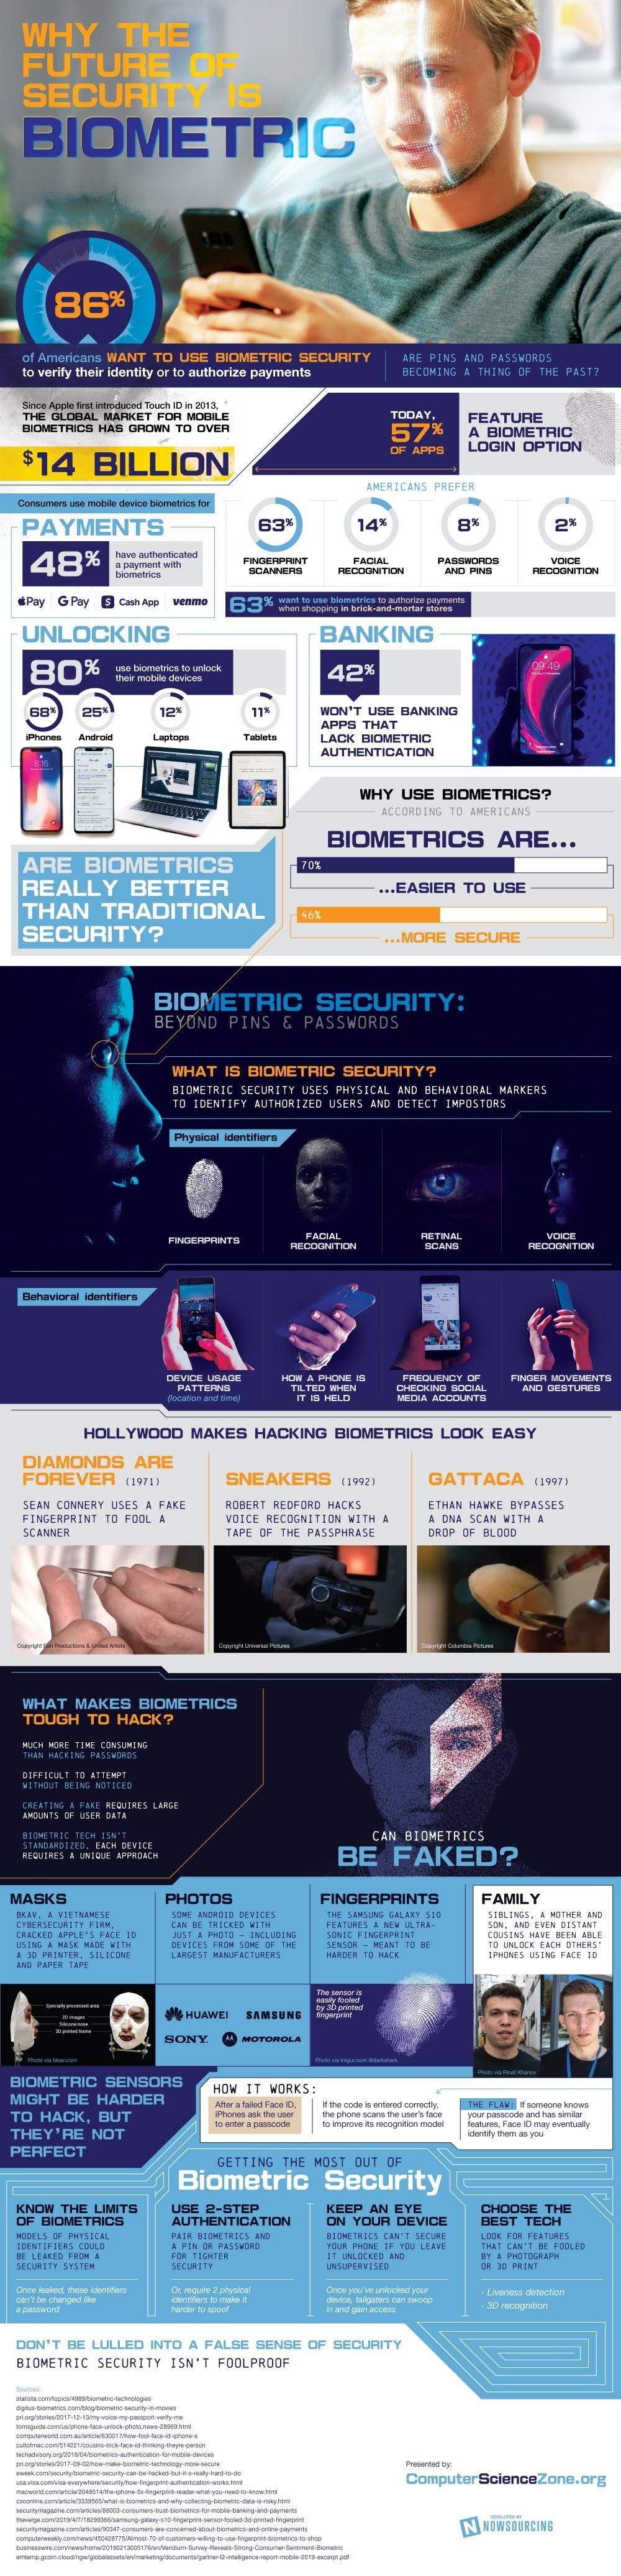 Can Biometrics Be Faked? #infographic